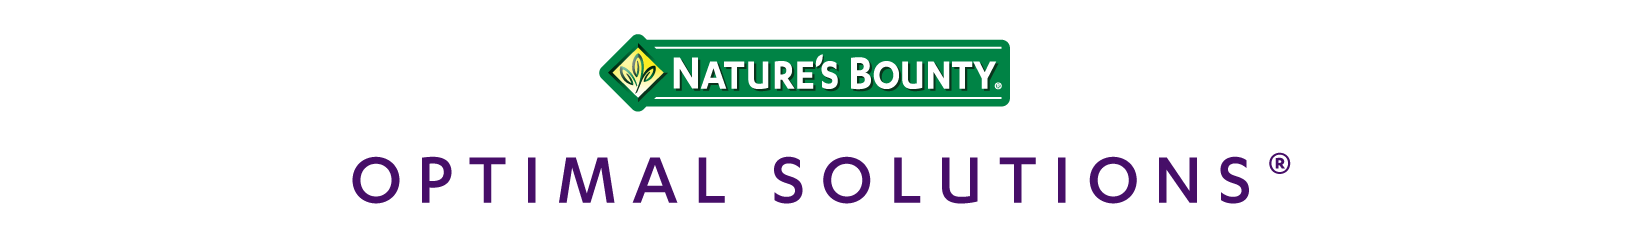 Optimal Solutions logo.png